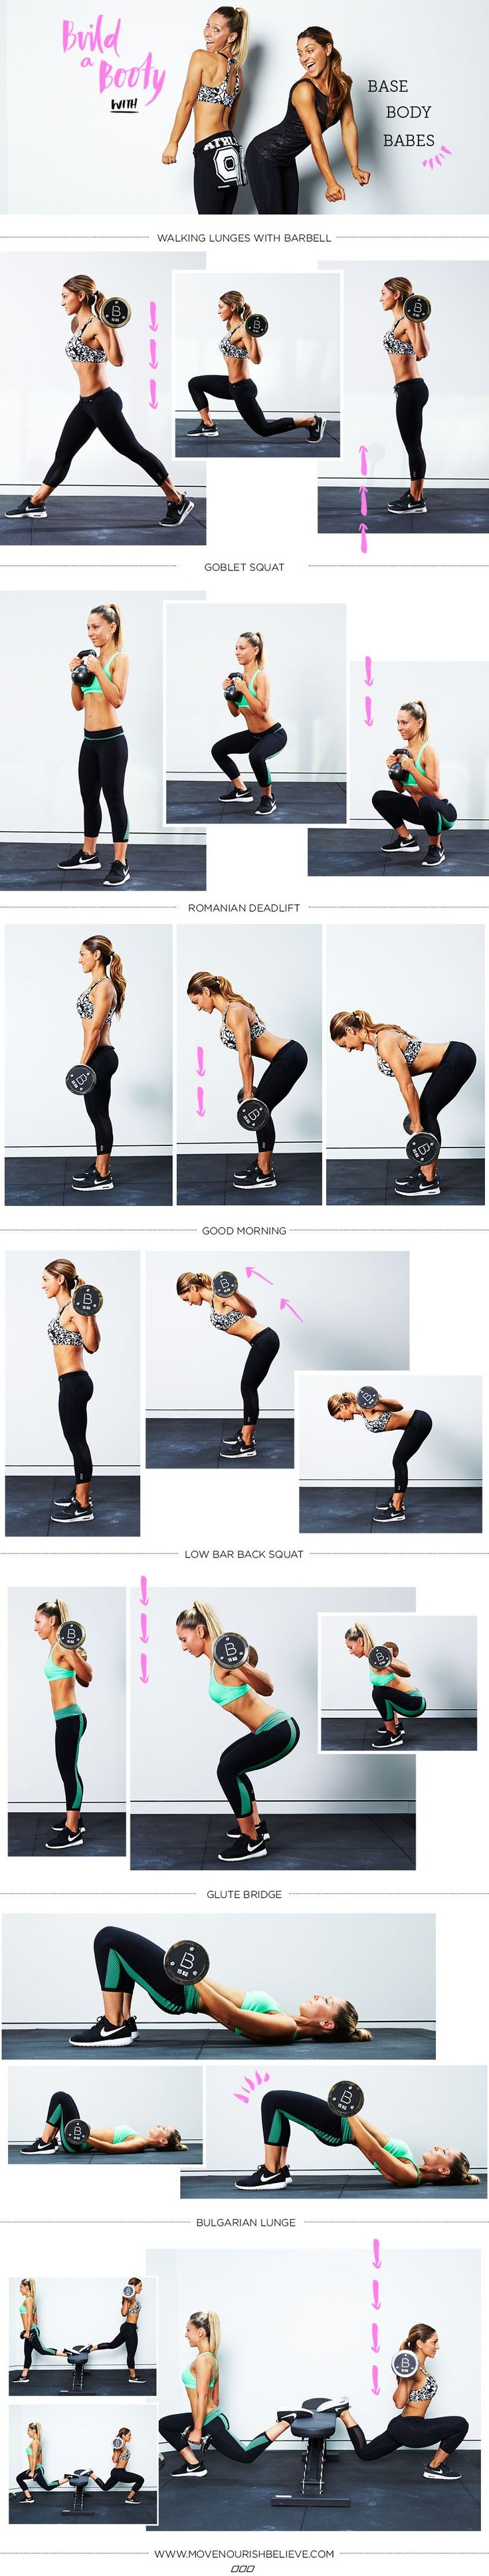 Fitness Made Easy: Build A Booty with Base Body Babes - Move Nourish ...